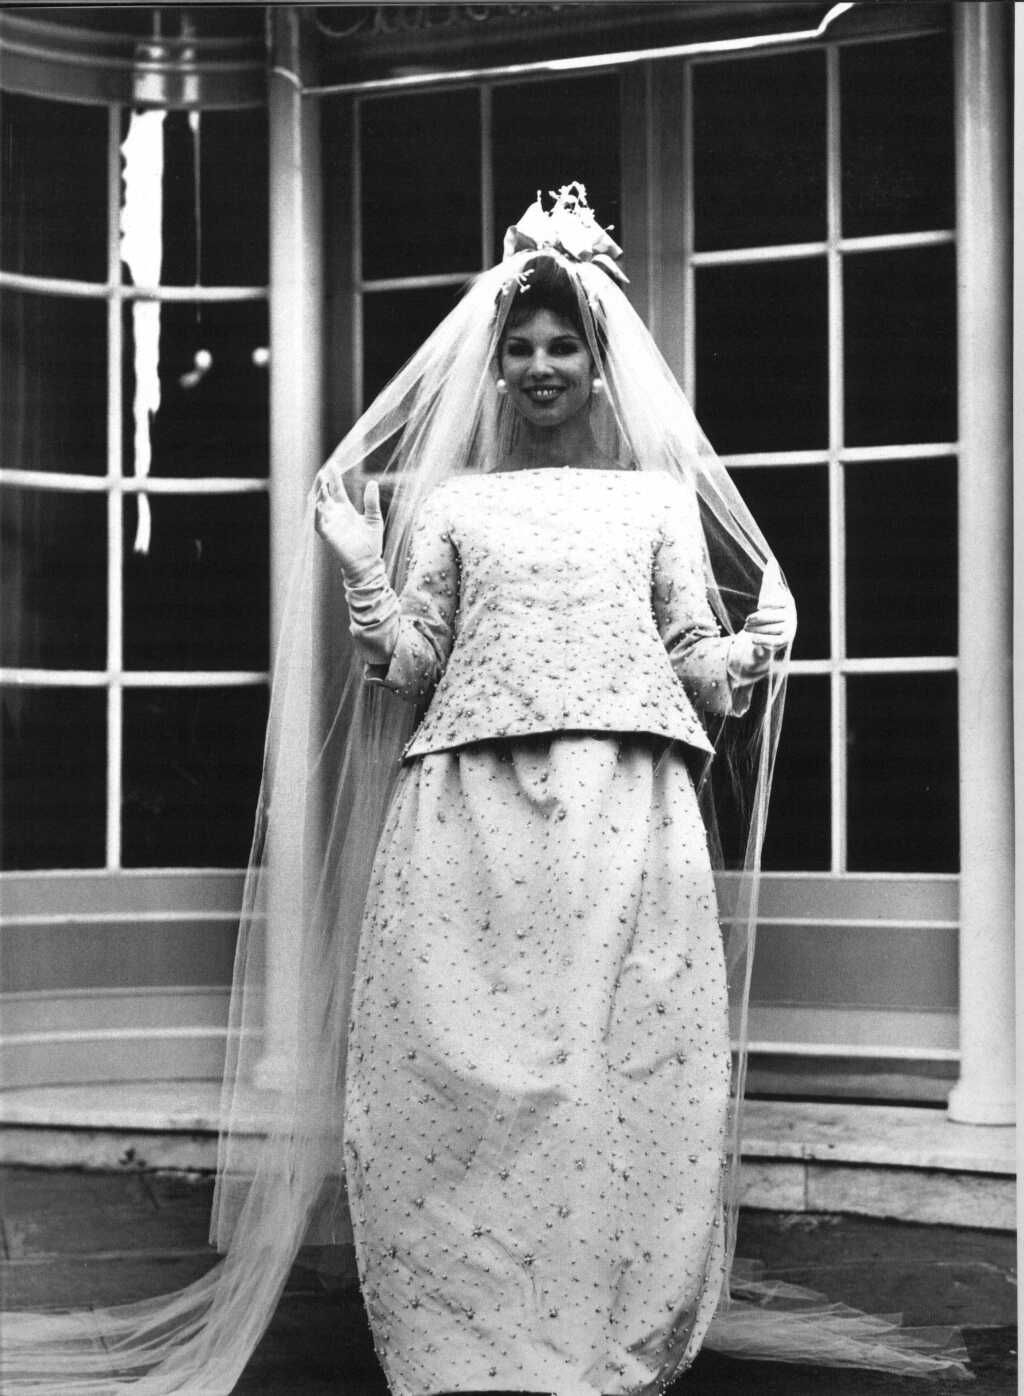 1960 - Victoire (Doutreleau) in Yves Saint Laurent for Dior wedding ...